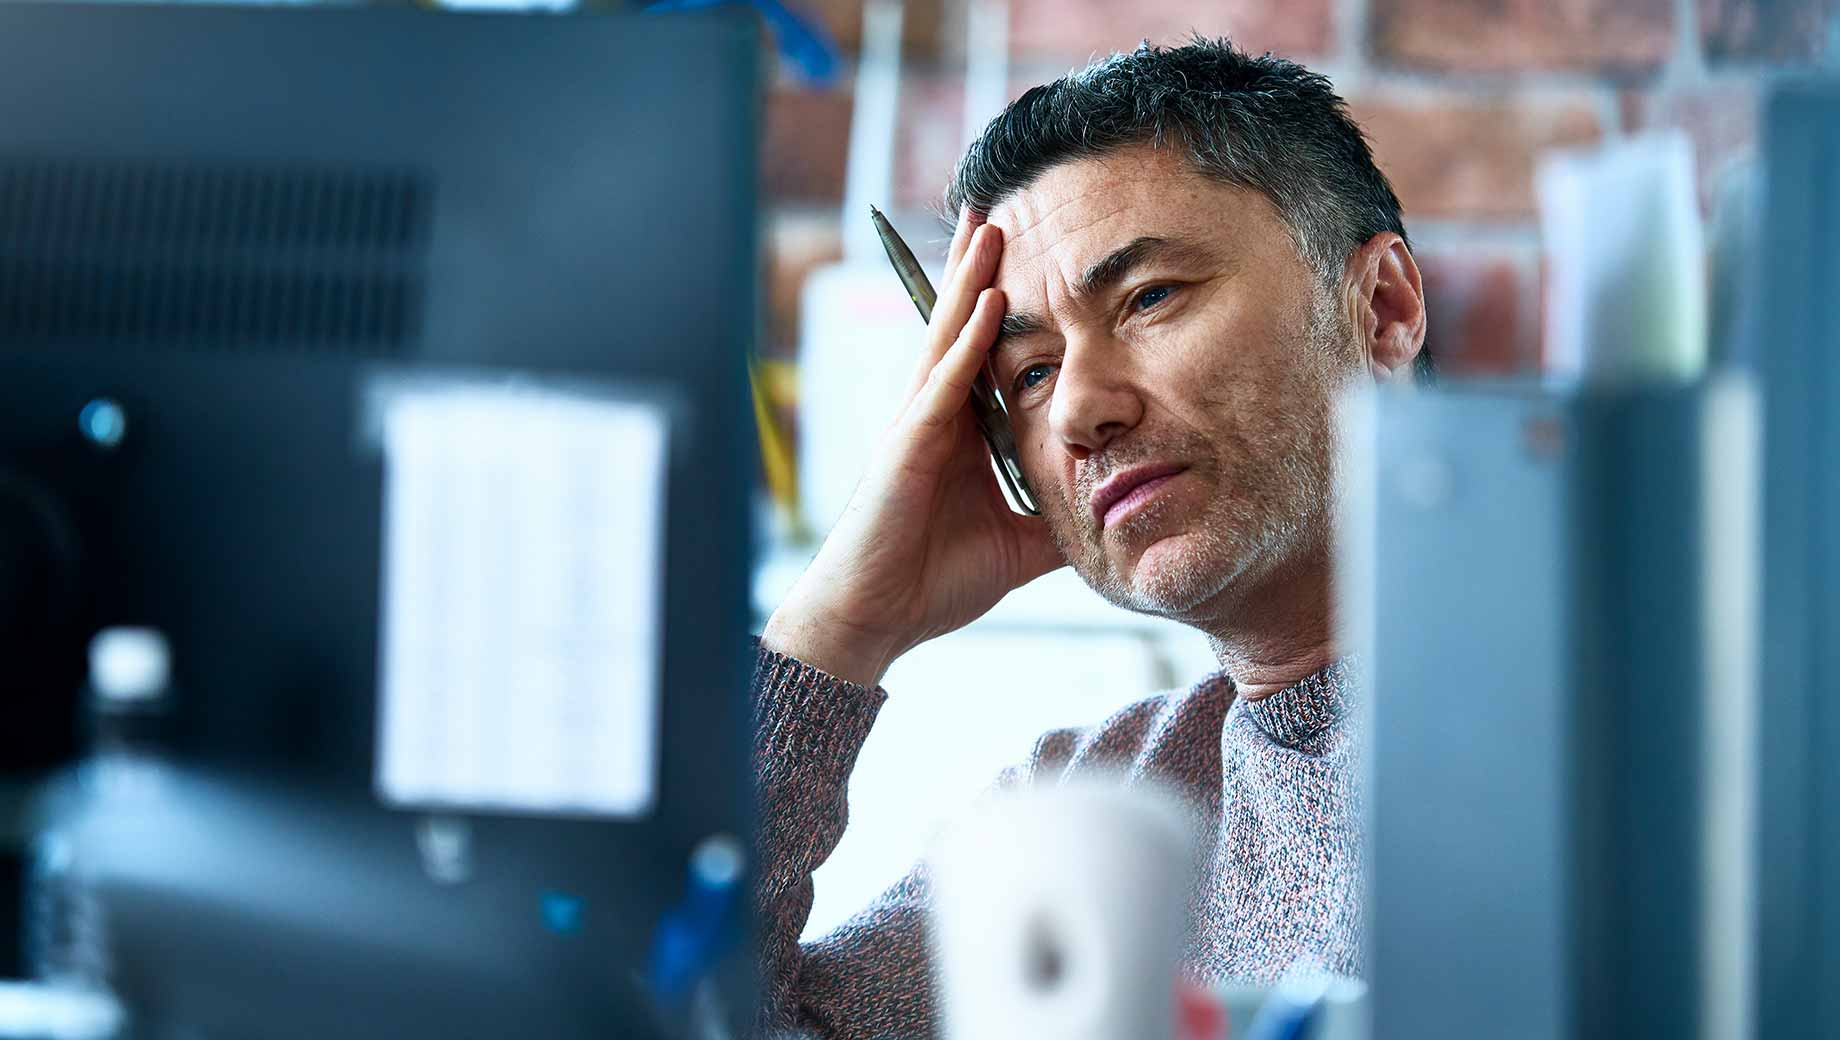 Employee Burnout: The Biggest Myth